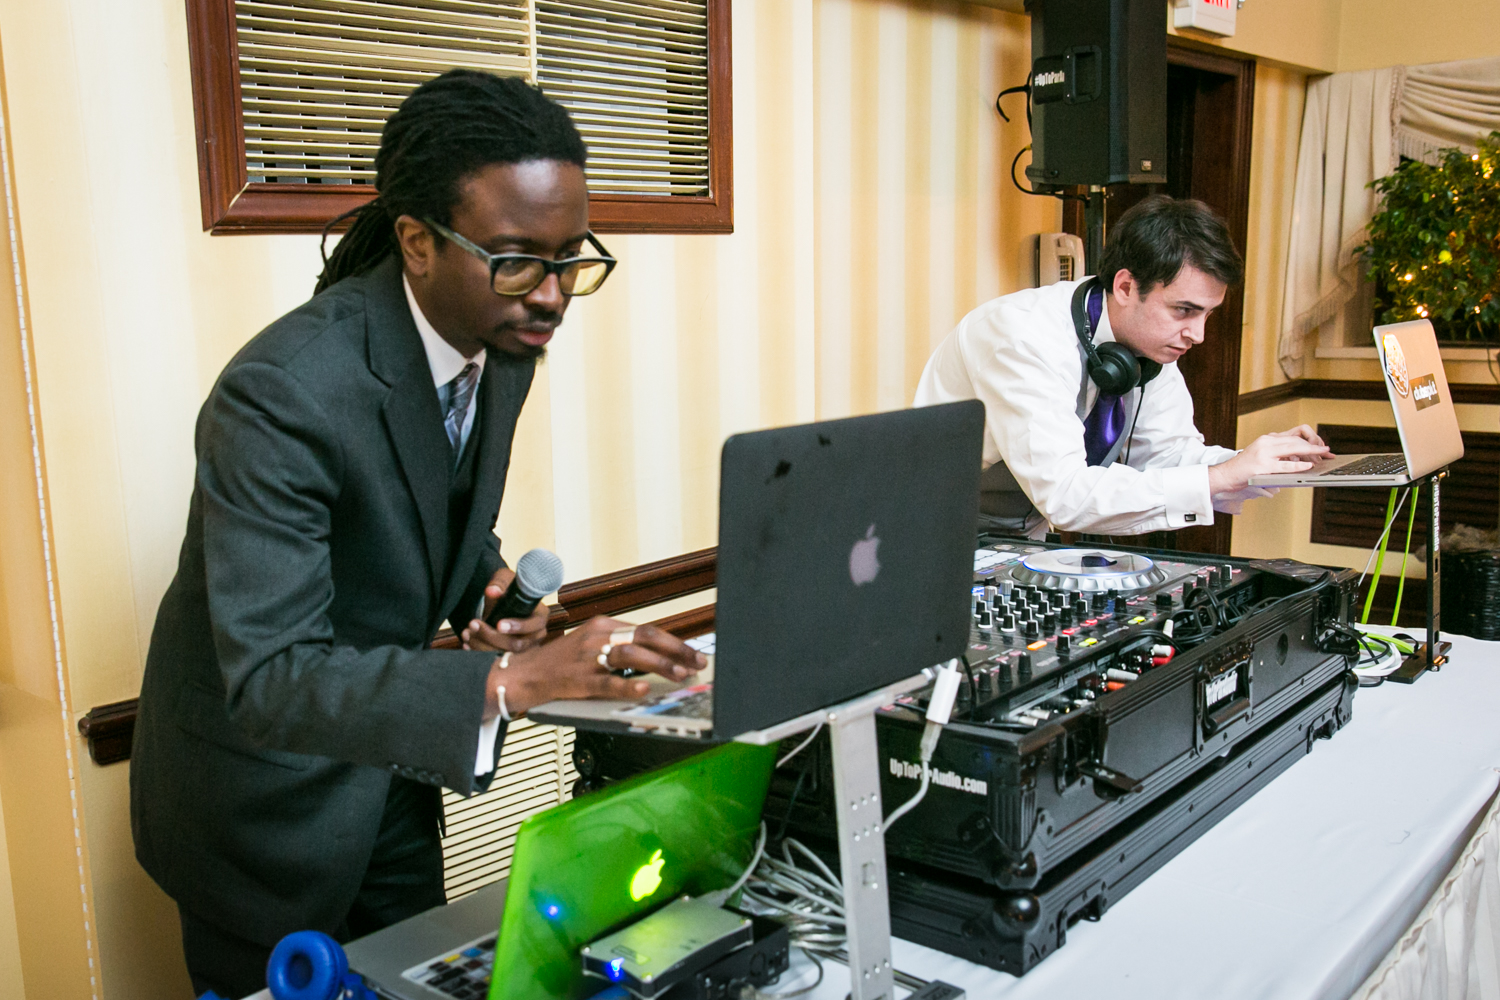 DJ and bride's brother playing music